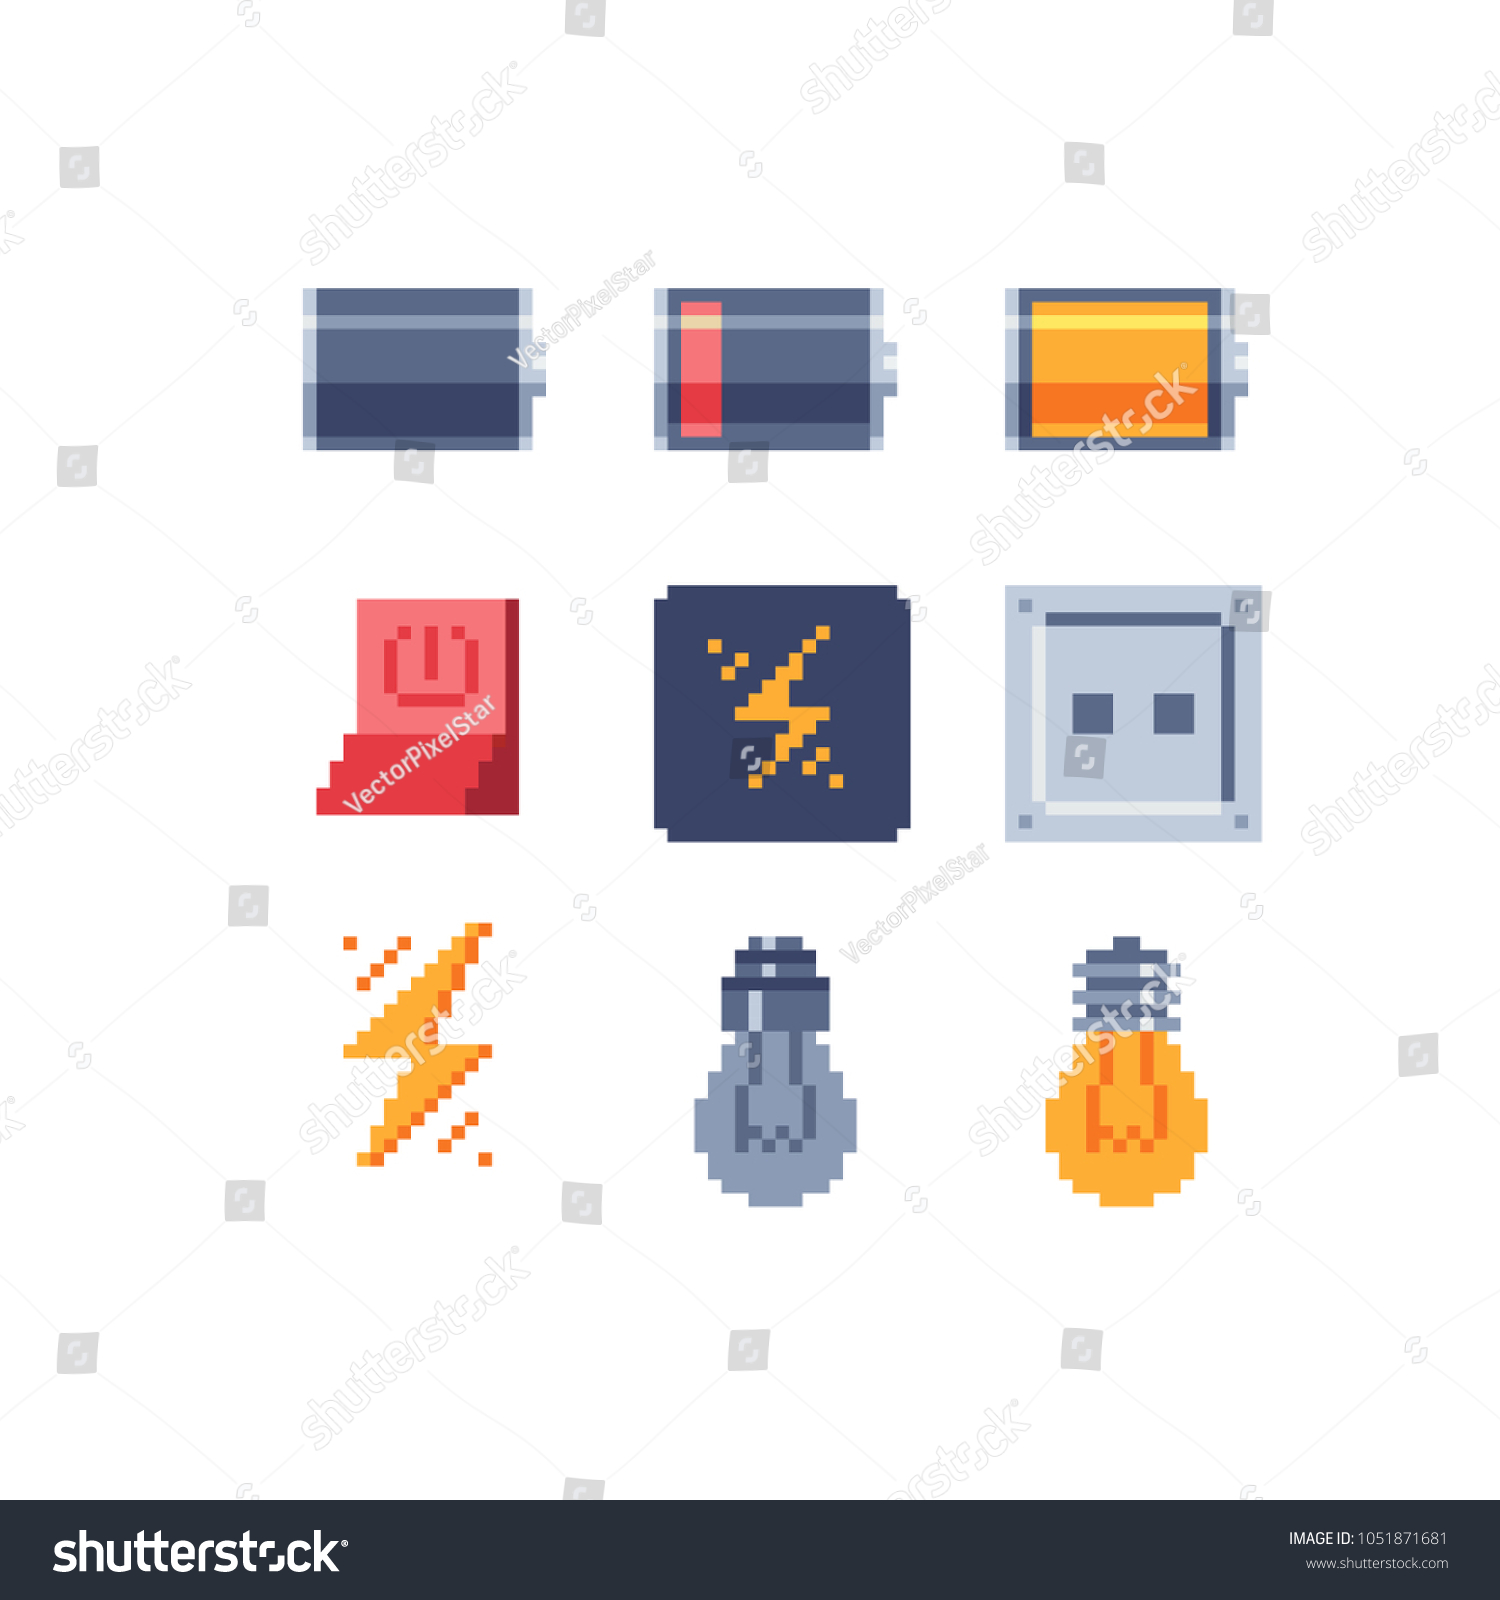 Energy Symbols Pixel Art Icons Electric Stock Vector Royalty Free Wiring Diagram Battery Symbol Further Light Bulb Circuit And Low Full Charge